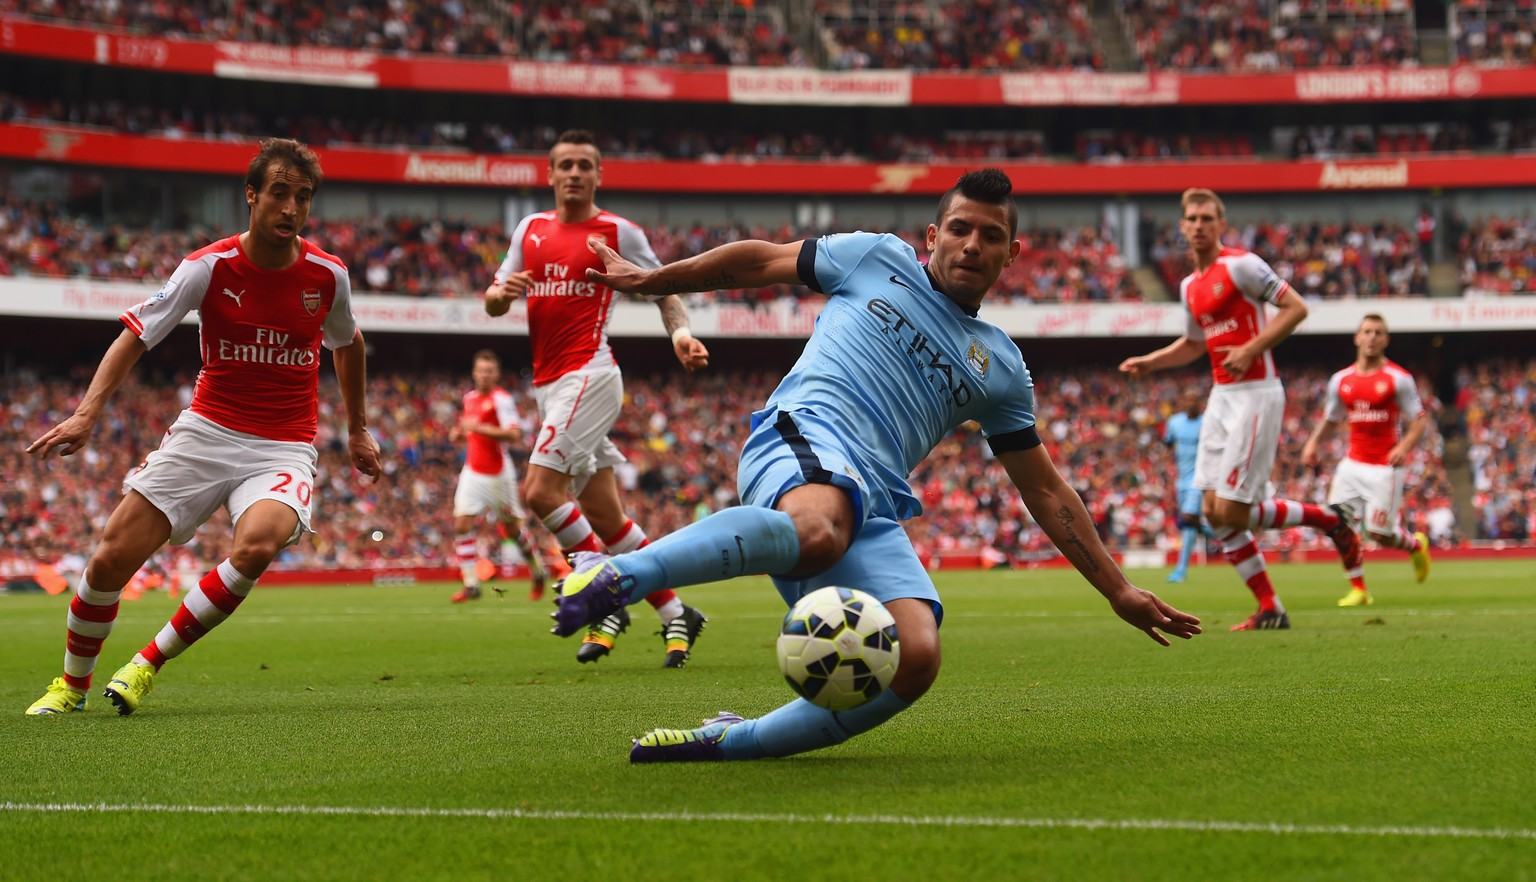 LONDON, ENGLAND - SEPTEMBER 13:  Sergio Aguero of Manchester City stretches for the ball during the Barclays Premier League match between Arsenal and Manchester City at Emirates Stadium on September 13, 2014 in London, England.  (Photo by Shaun Botterill/Getty Images)